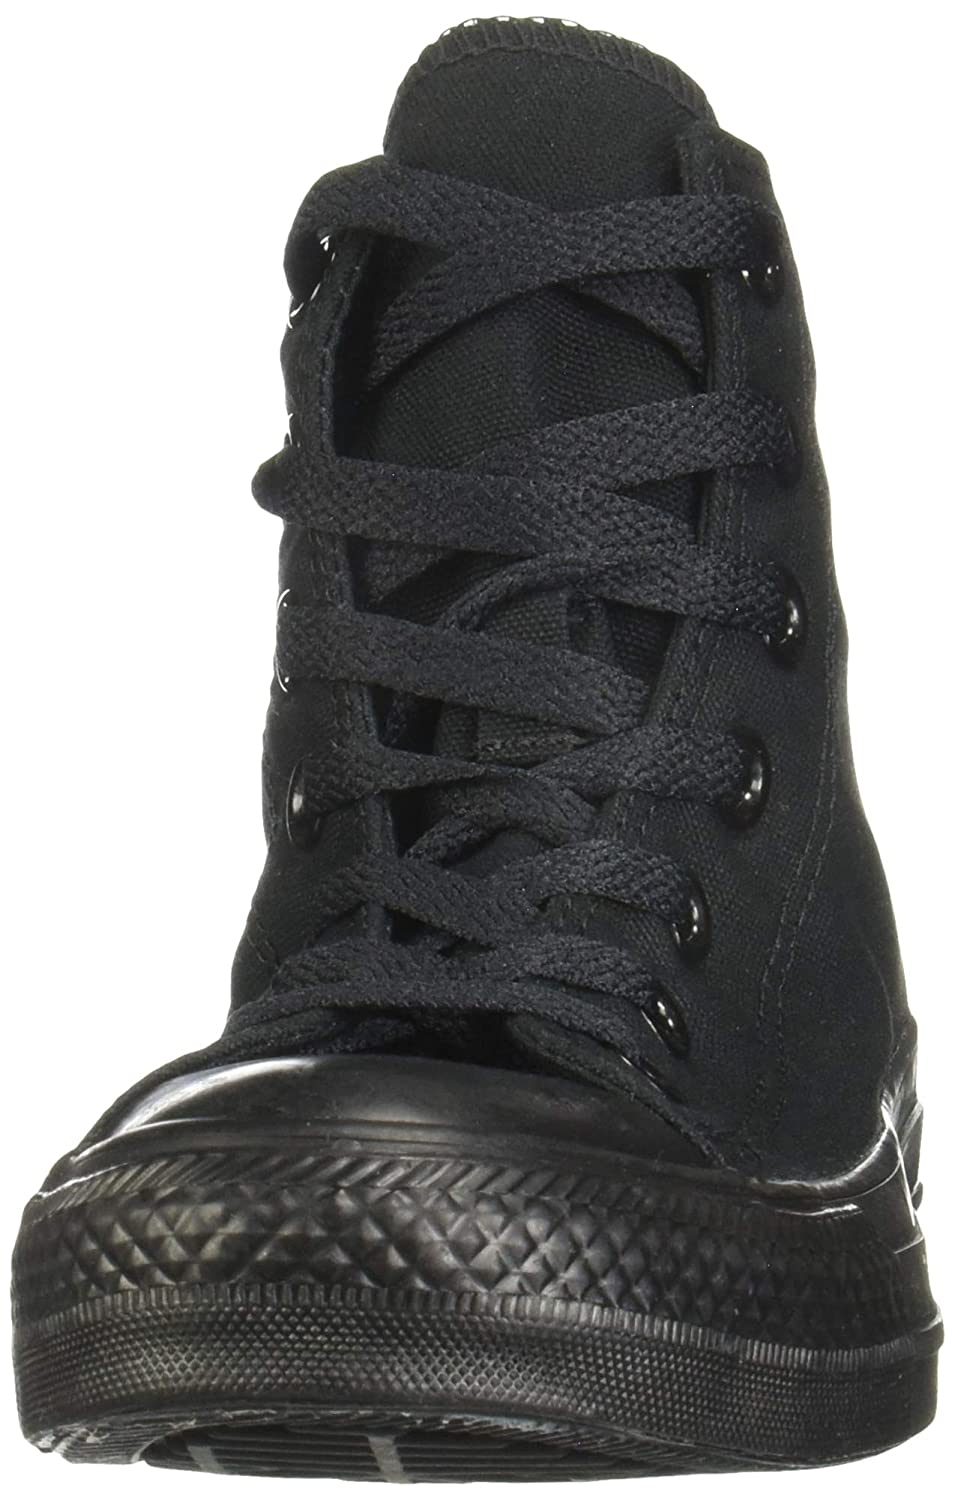 Converse Chuck Taylor All Star Toddler High Top, Top, Top, Scarpe per bambini | Outlet Store Online  0c4a08